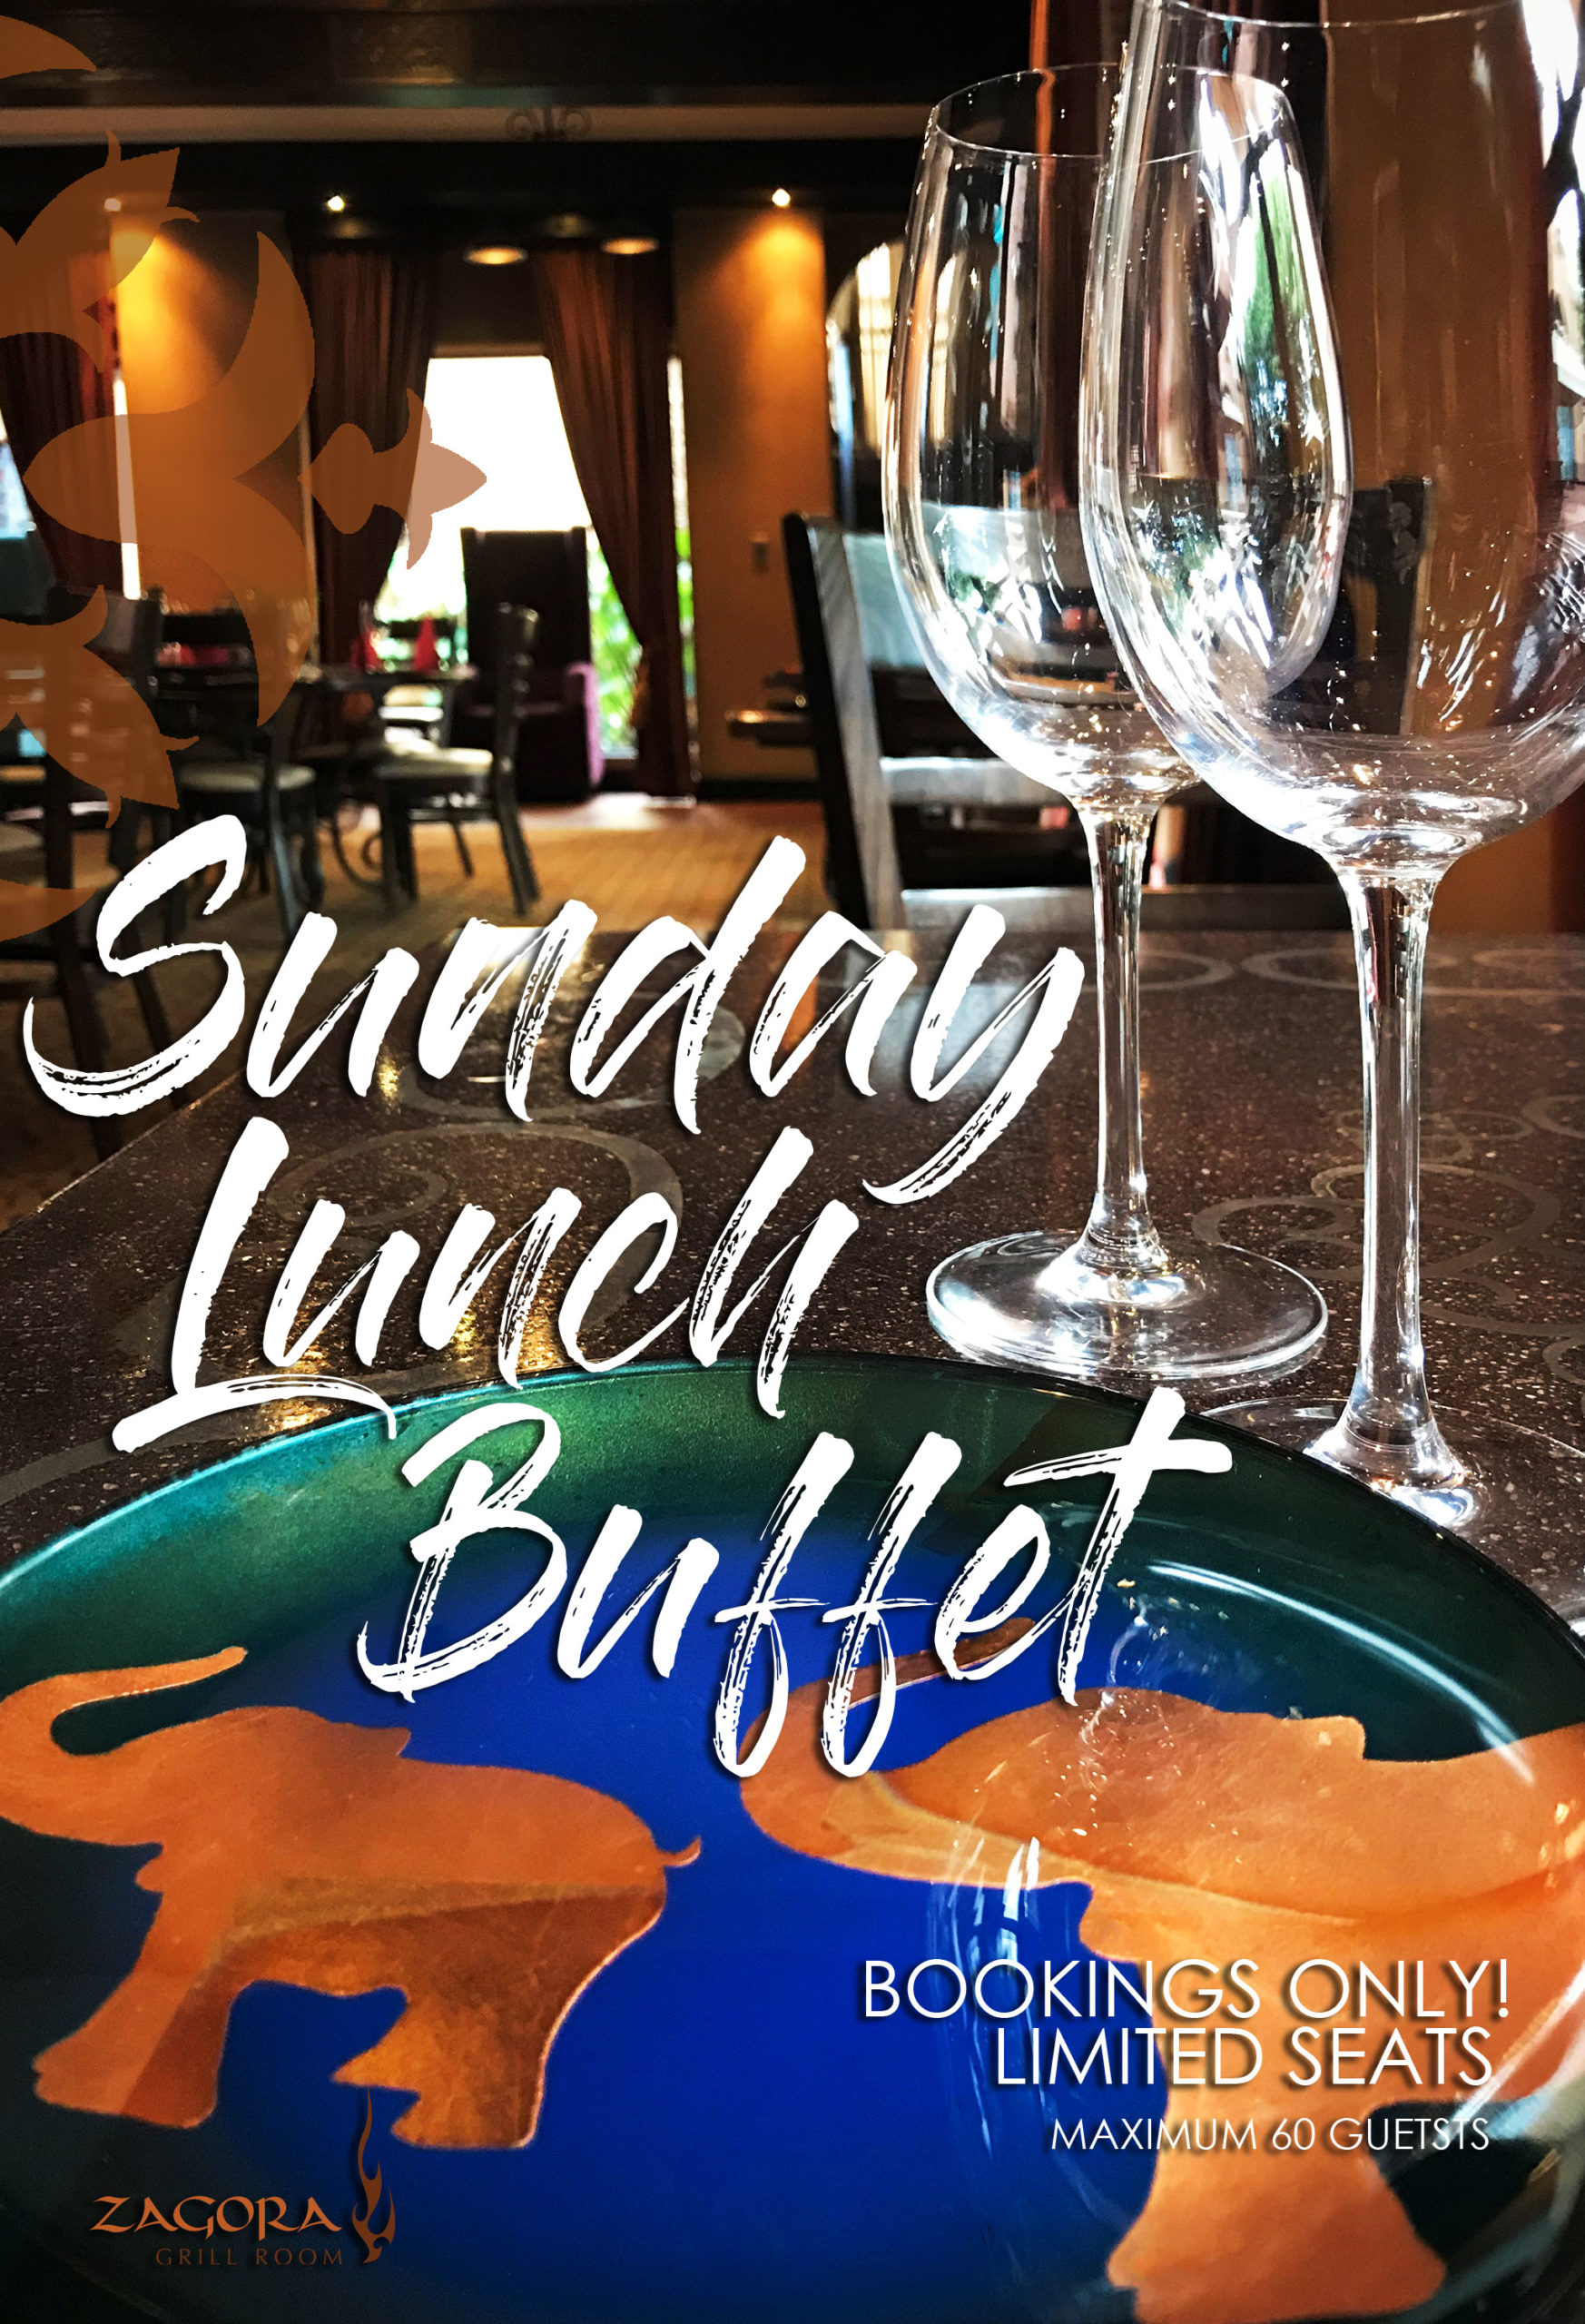 Restricted Sunday Lunch Buffet